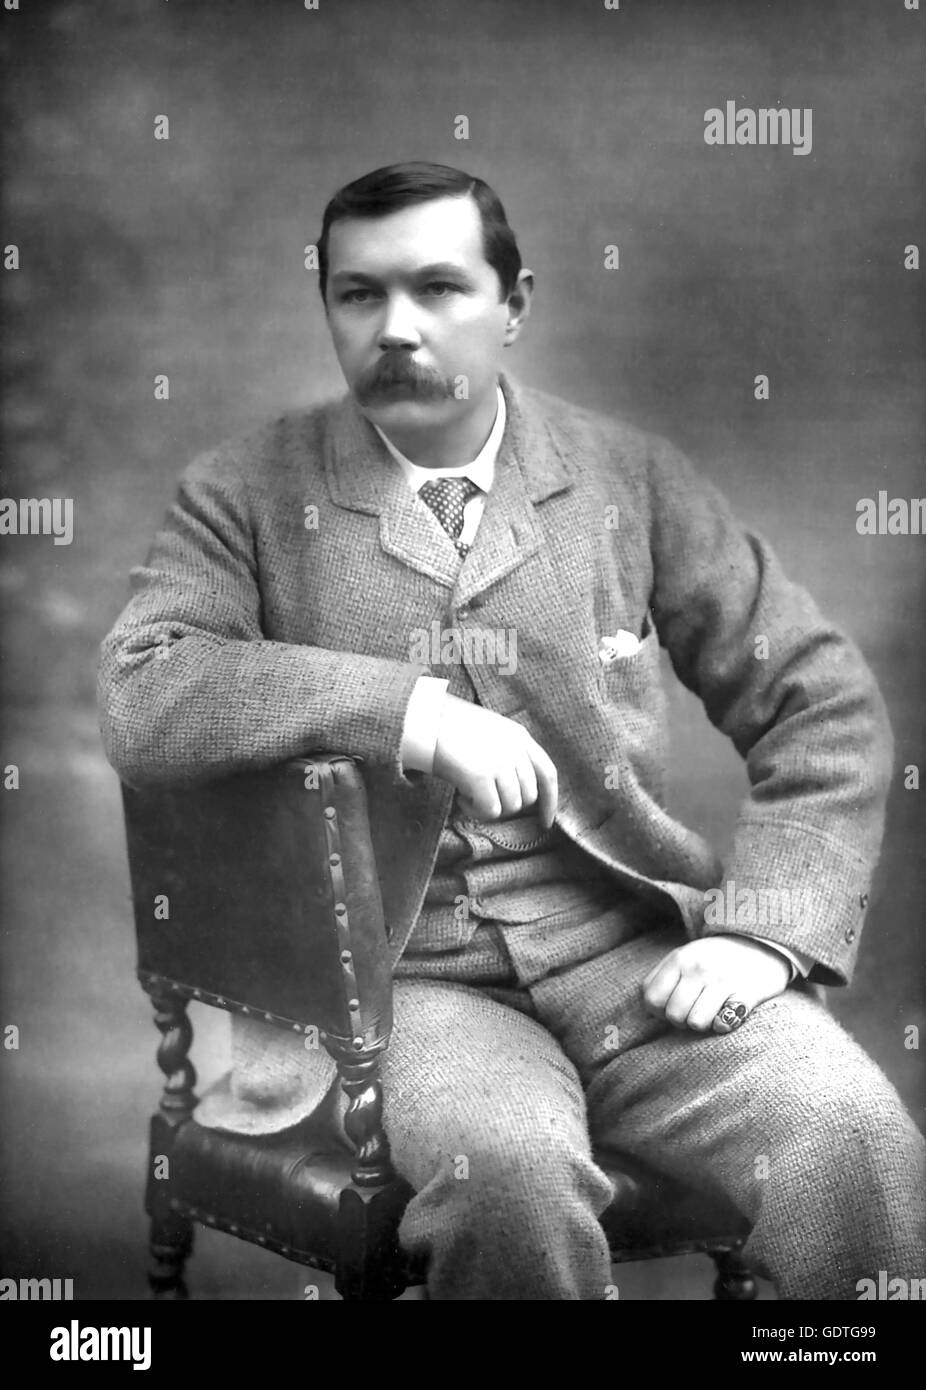 ARTHUR CONAN DOYLE (1859-1930) Scottish physician and writer who created the character of Sherlock Holmes in 1893. - Stock Image